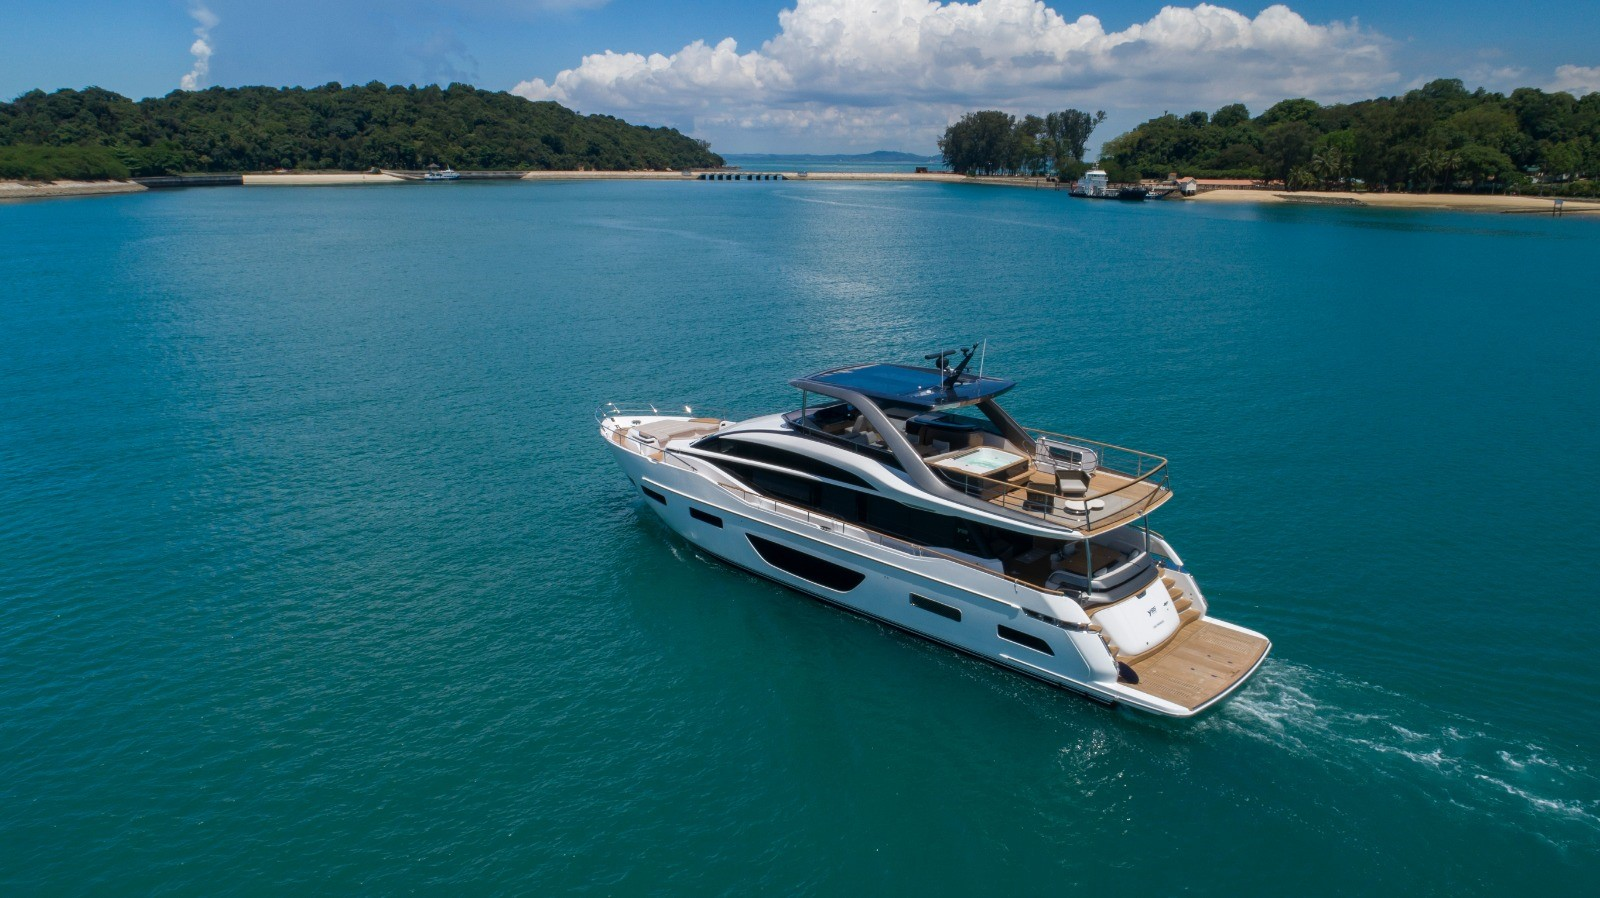 What to Look For in a Used Yacht for Sale in Thailand